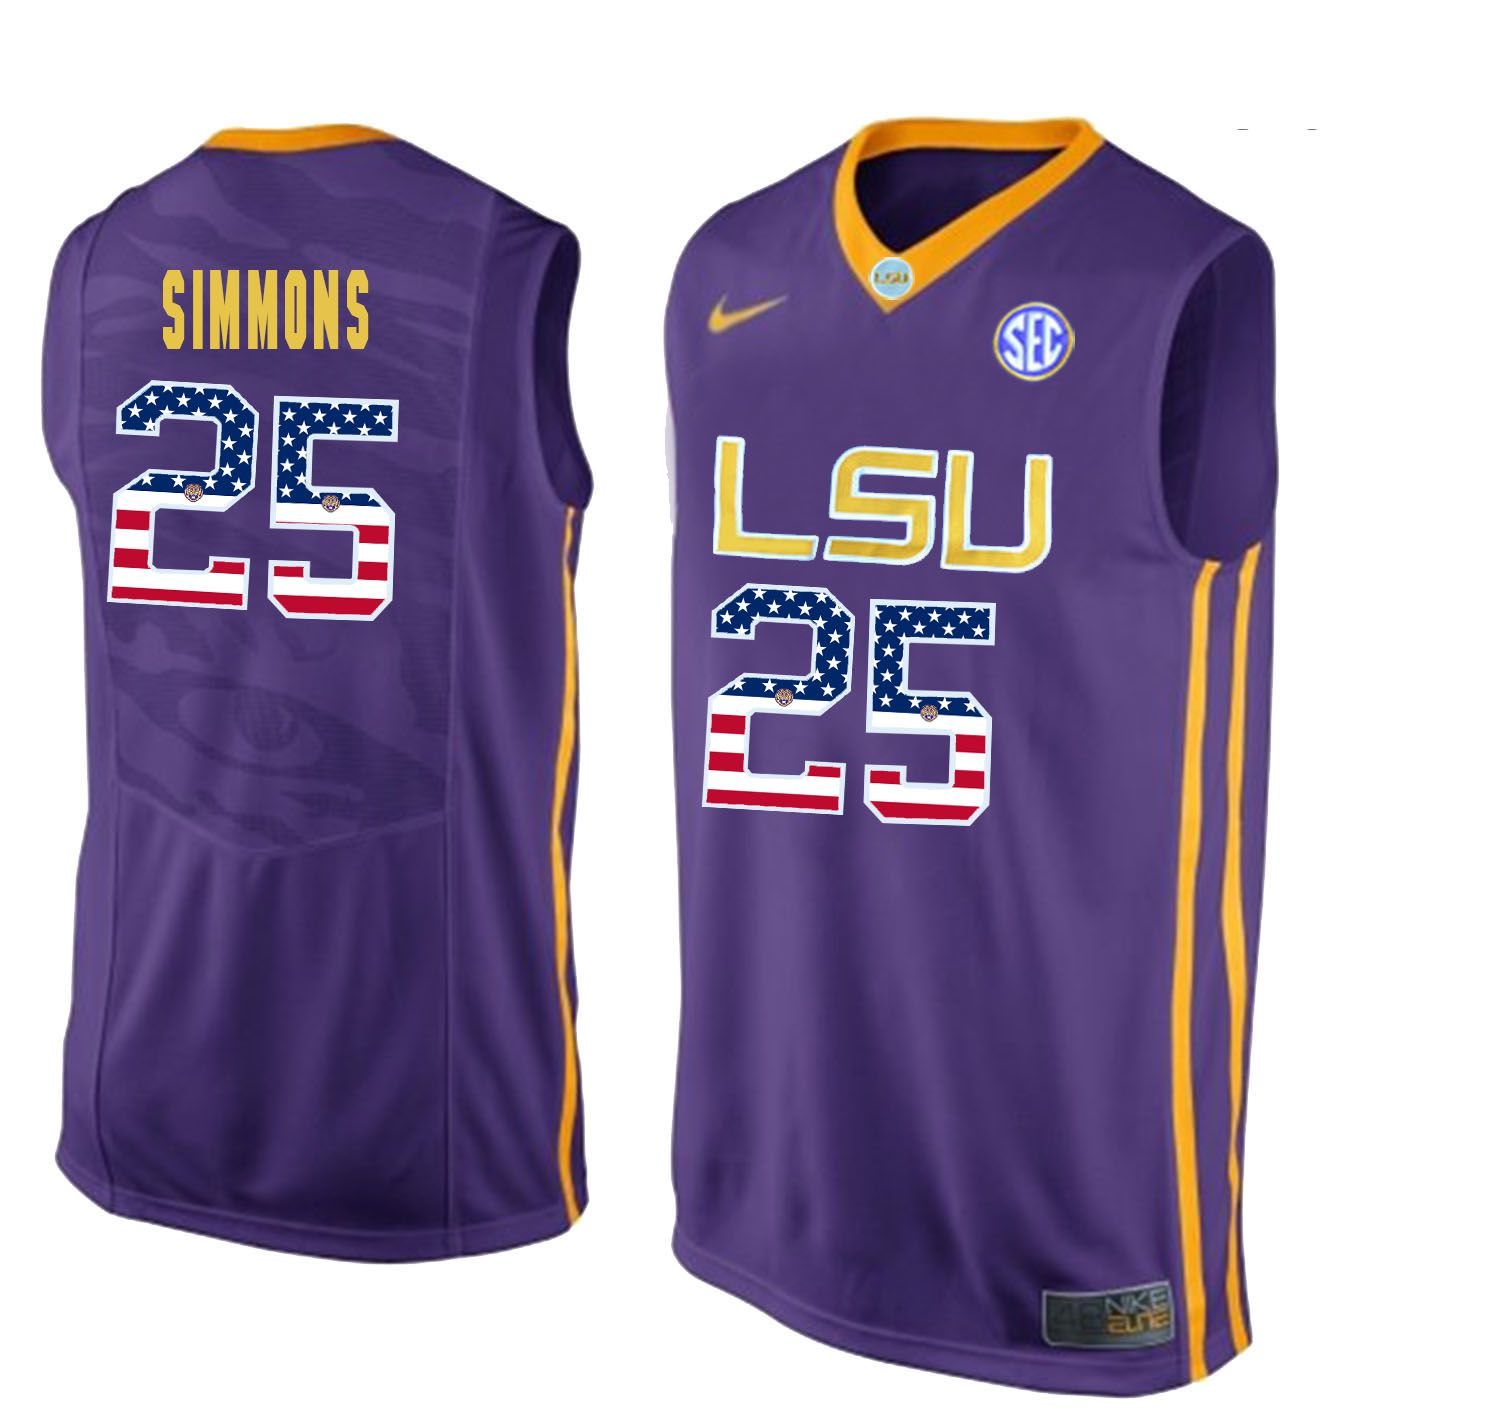 Men LSU Tigers 25 Simmons Purple Flag Customized NCAA Jerseys